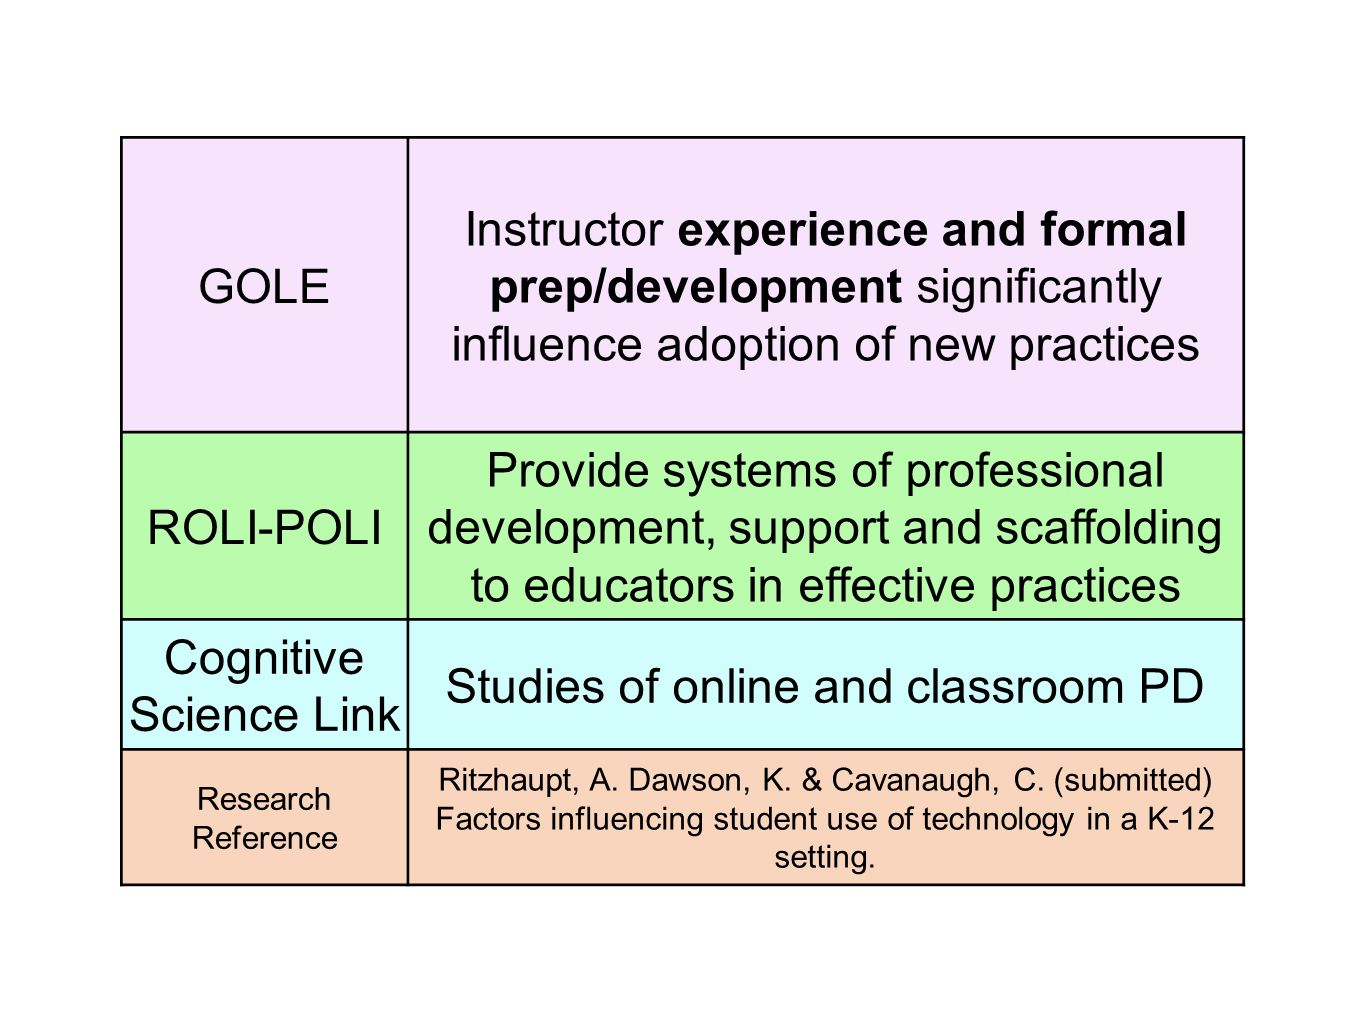 GOLE Instructor experience and formal prep/development significantly influence adoption of new practices ROLI-POLI Provide systems of professional development, support and scaffolding to educators in effective practices Cognitive Science Link Studies of online and classroom PD Research Reference Ritzhaupt, A.